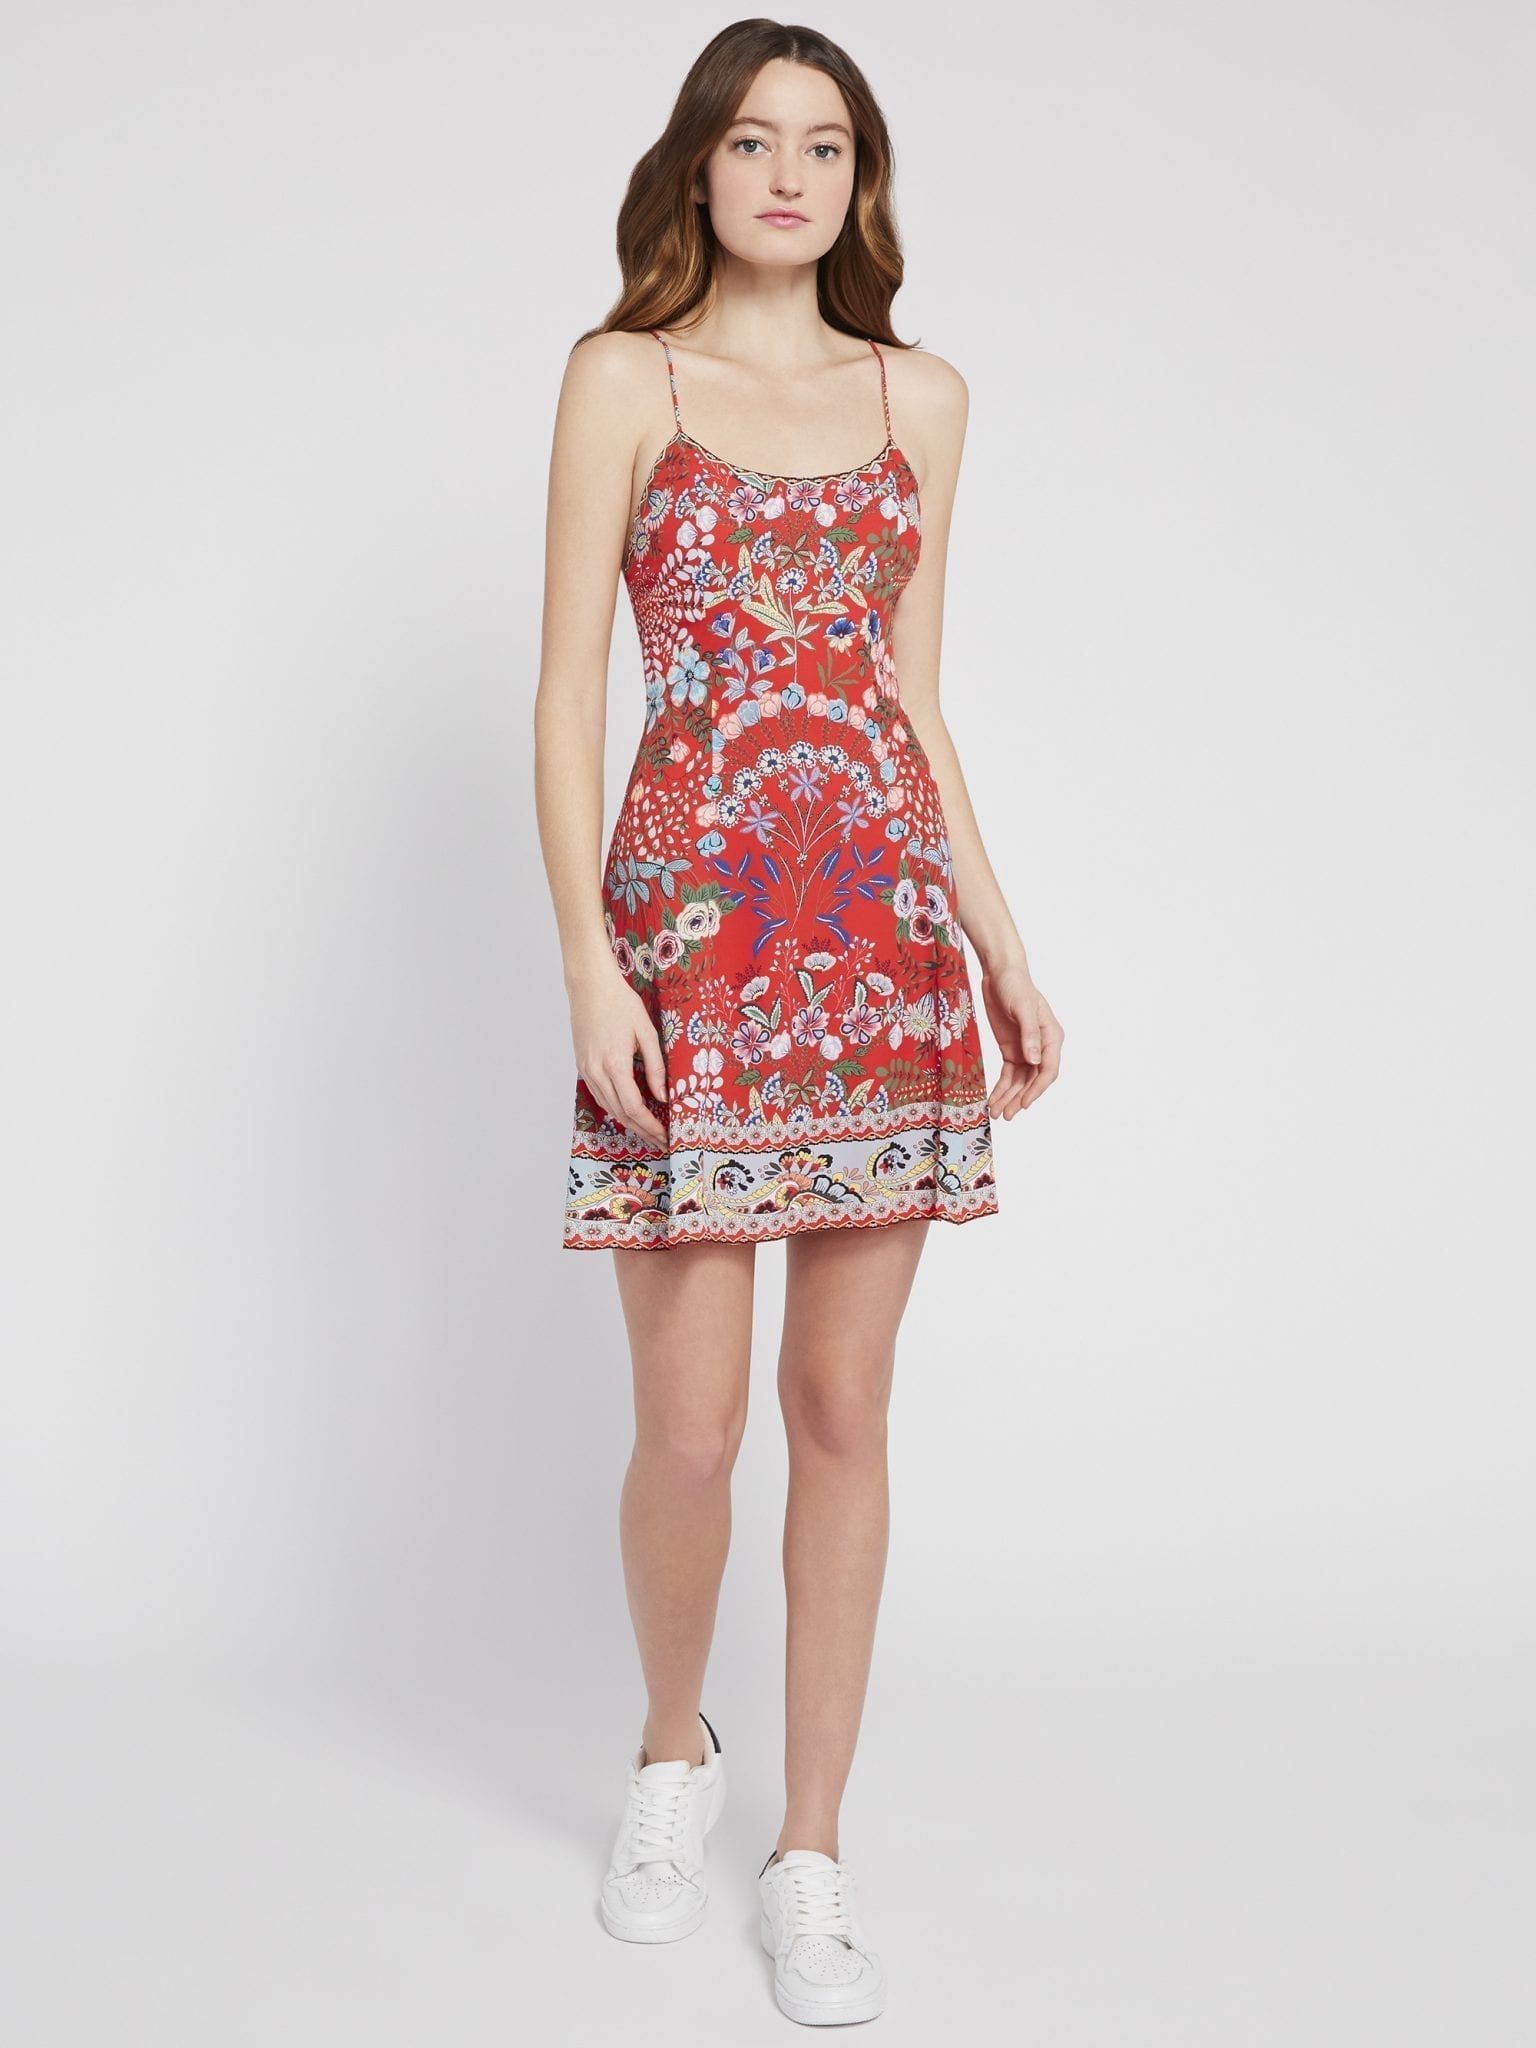 ALICE AND OLIVIA Ira Floral Mini Dress